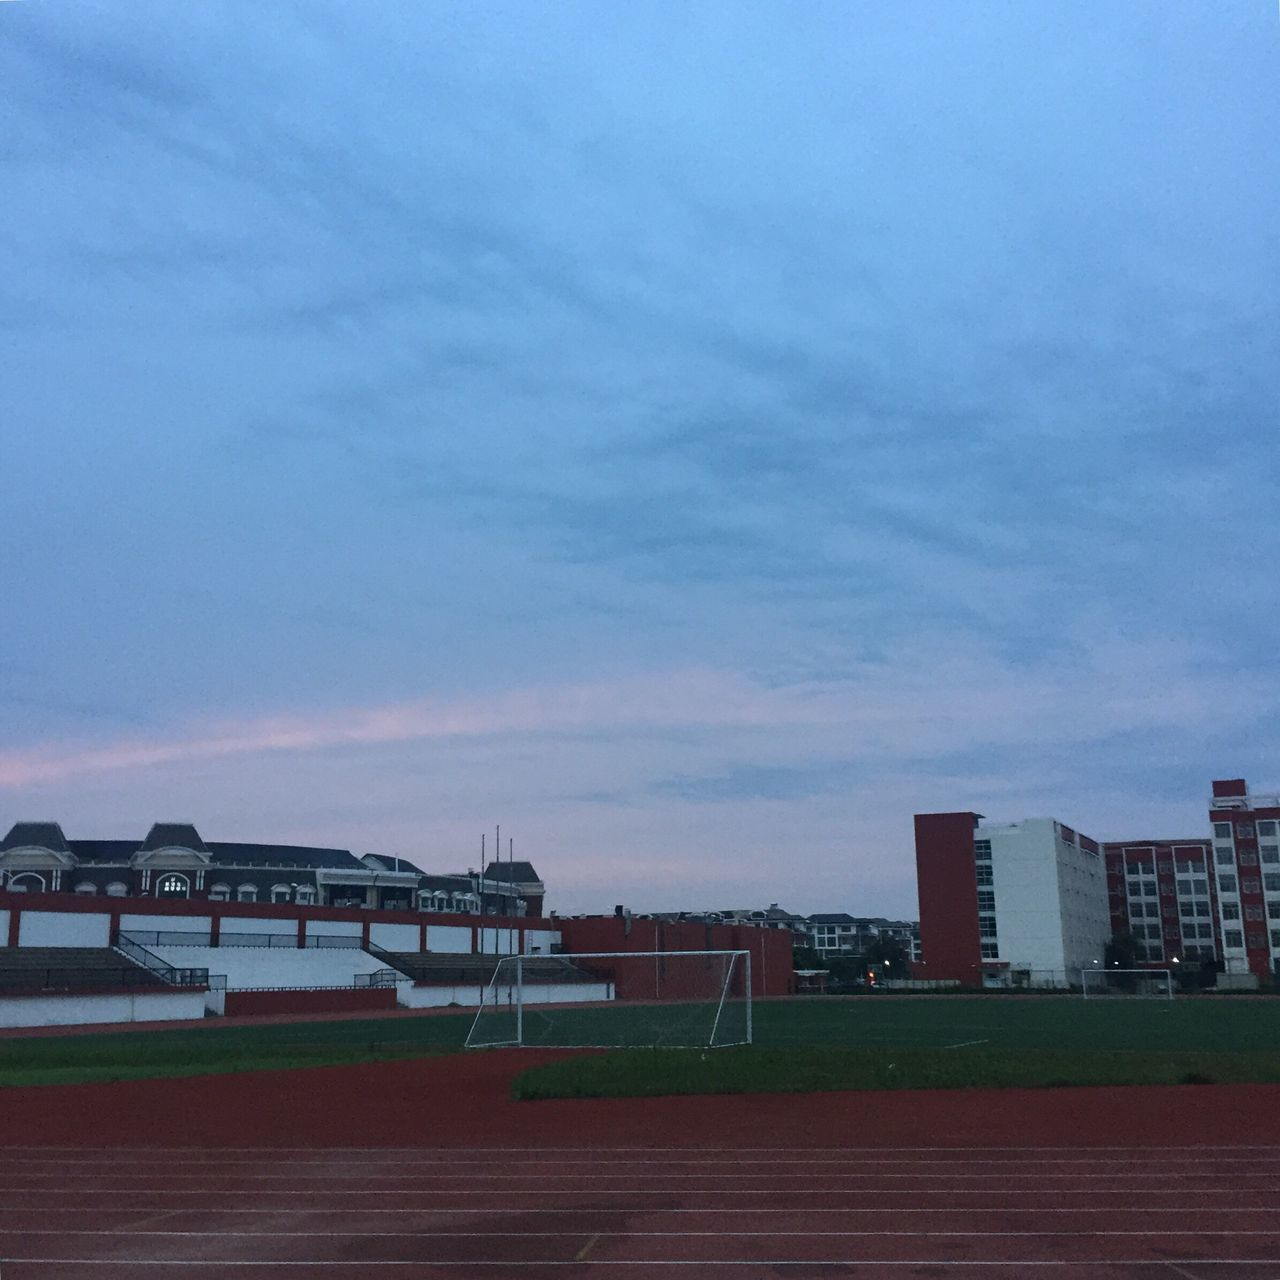 sky, sport, architecture, built structure, no people, outdoors, running track, building exterior, stadium, city, nature, day